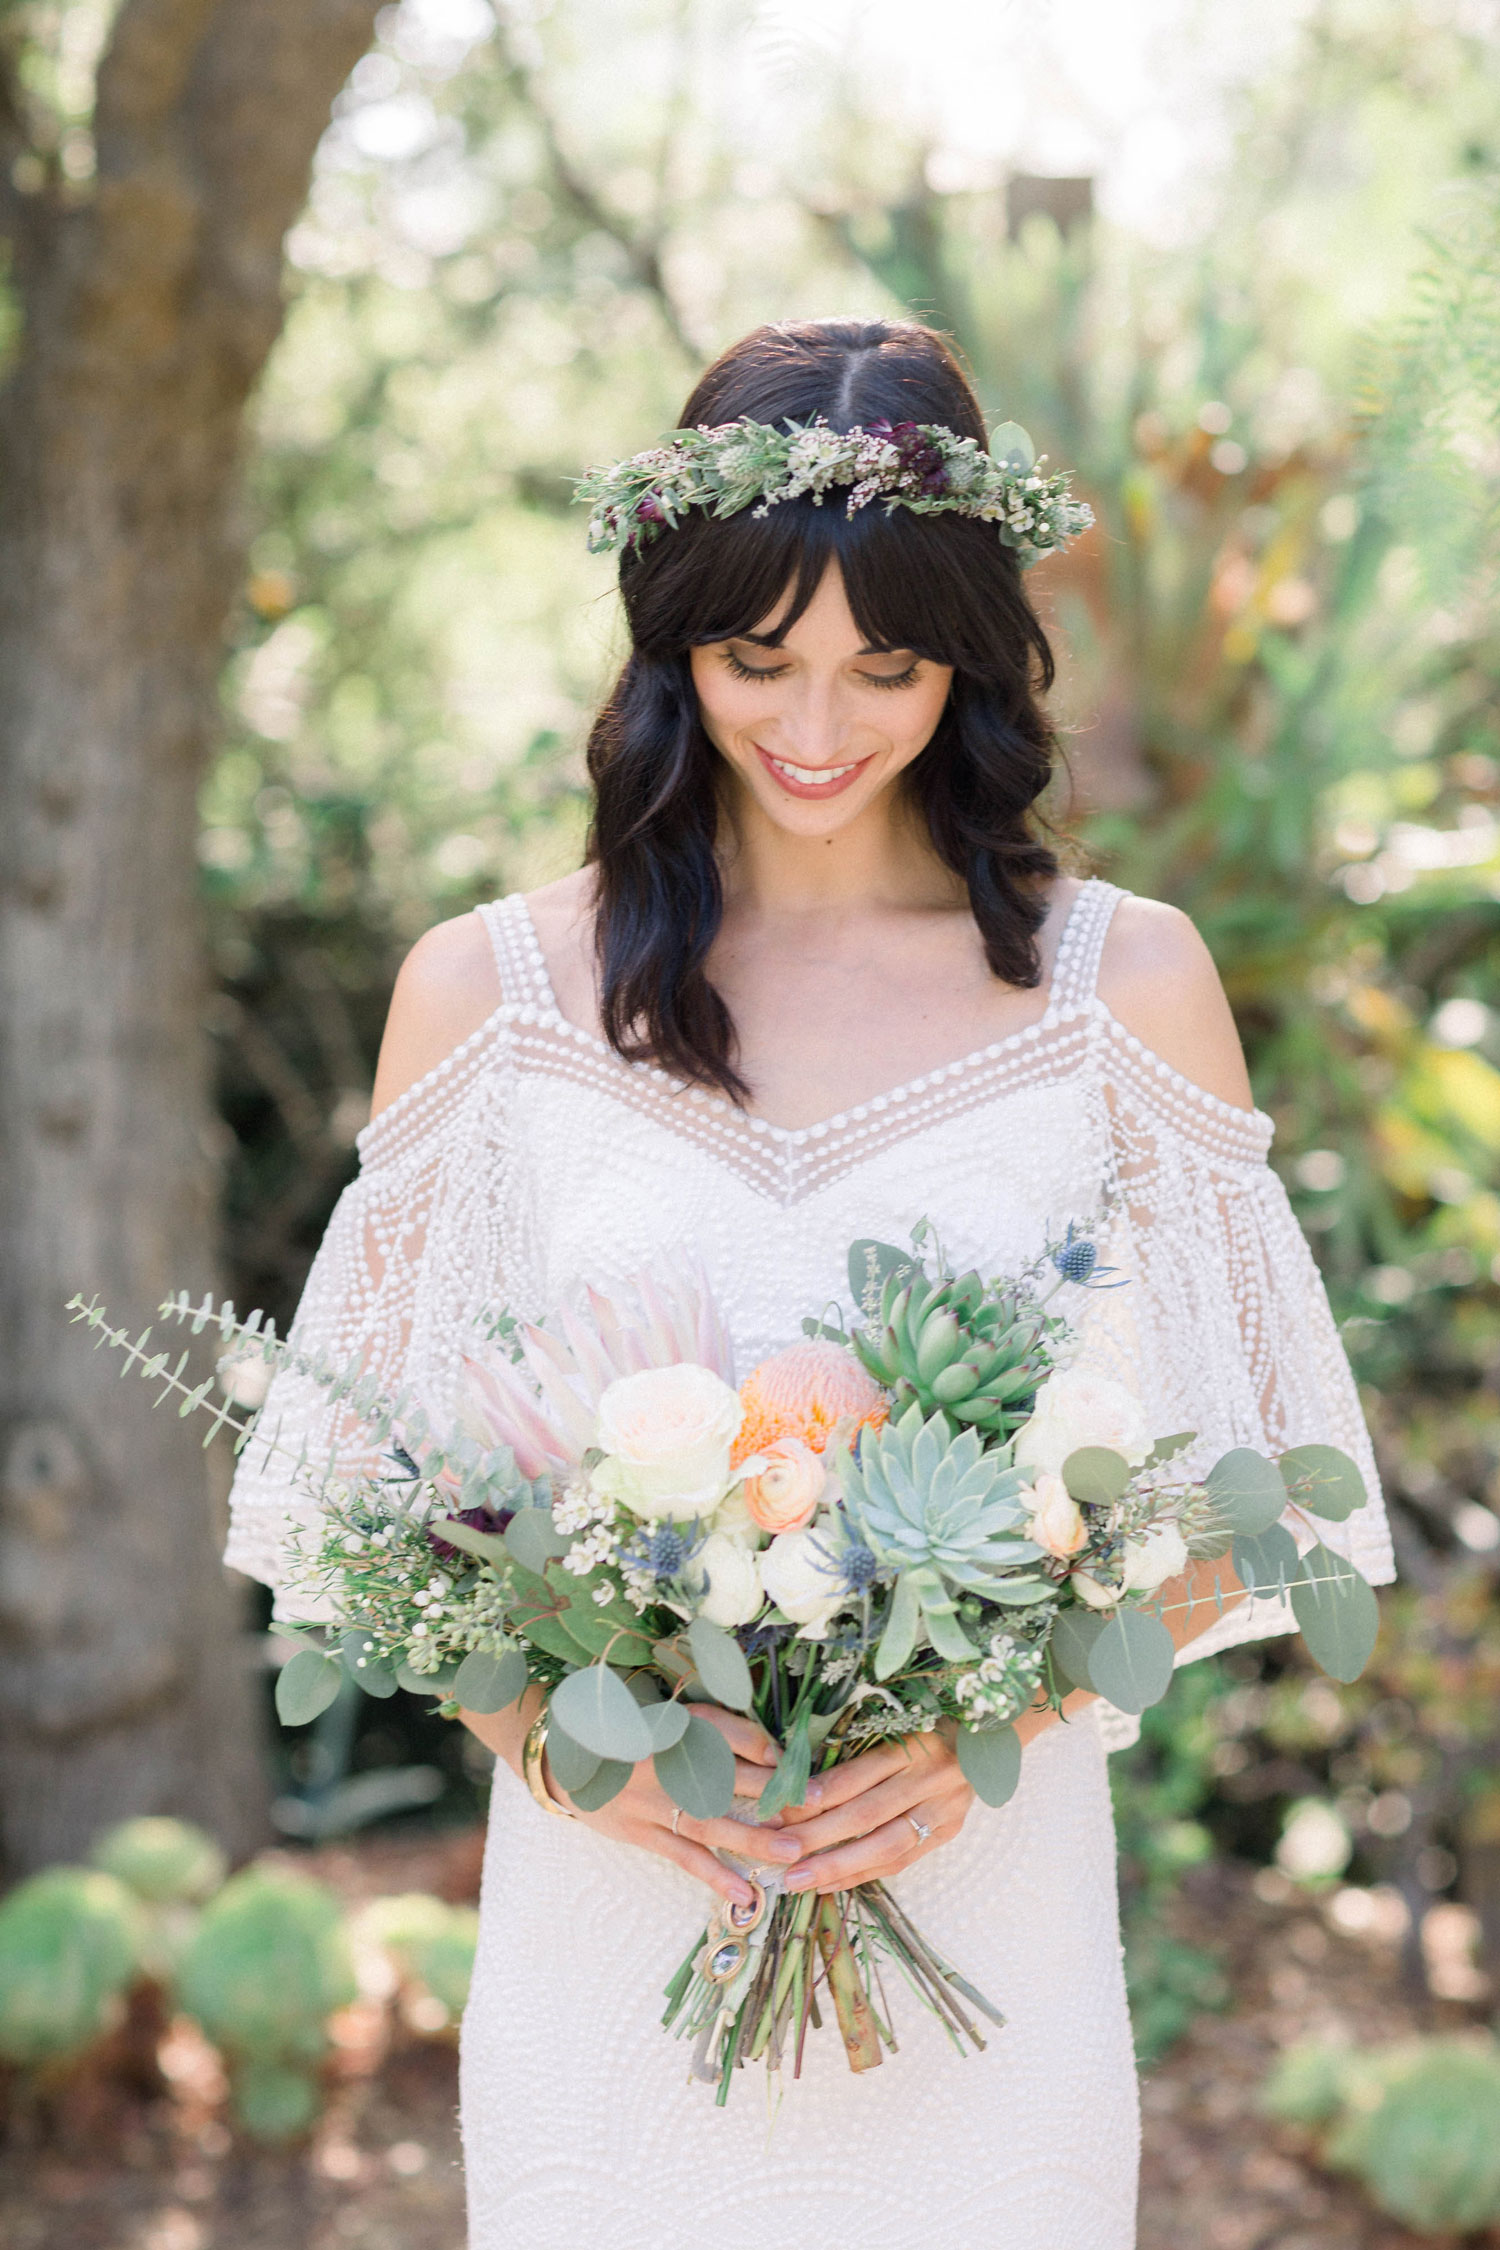 Bride for vegan wedding with flower crown and beautiful bouquet